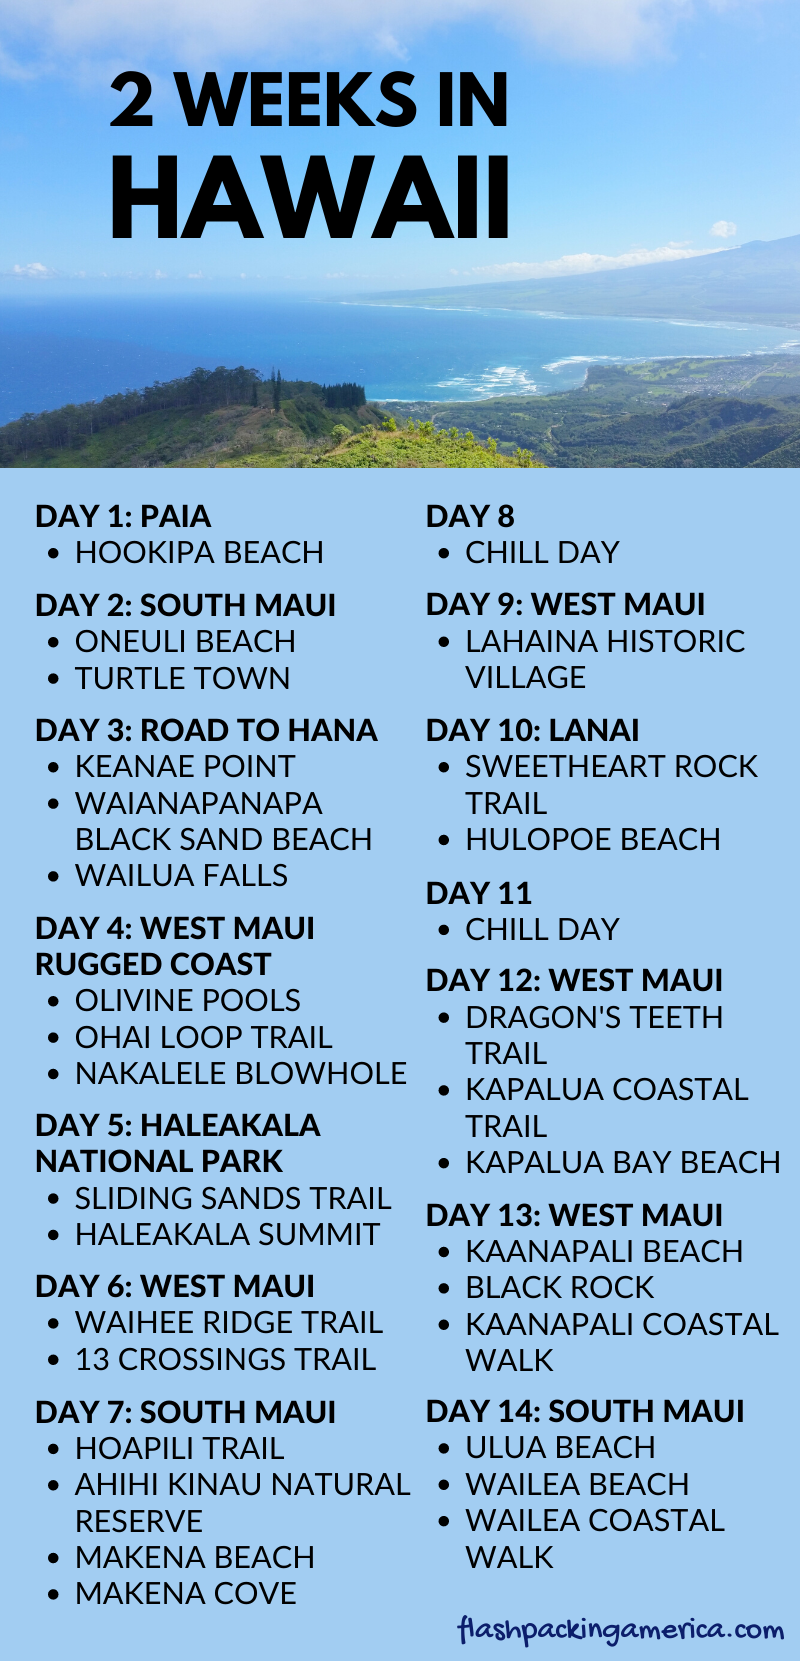 2 weeks in Hawaii itinerary ideas of things to do